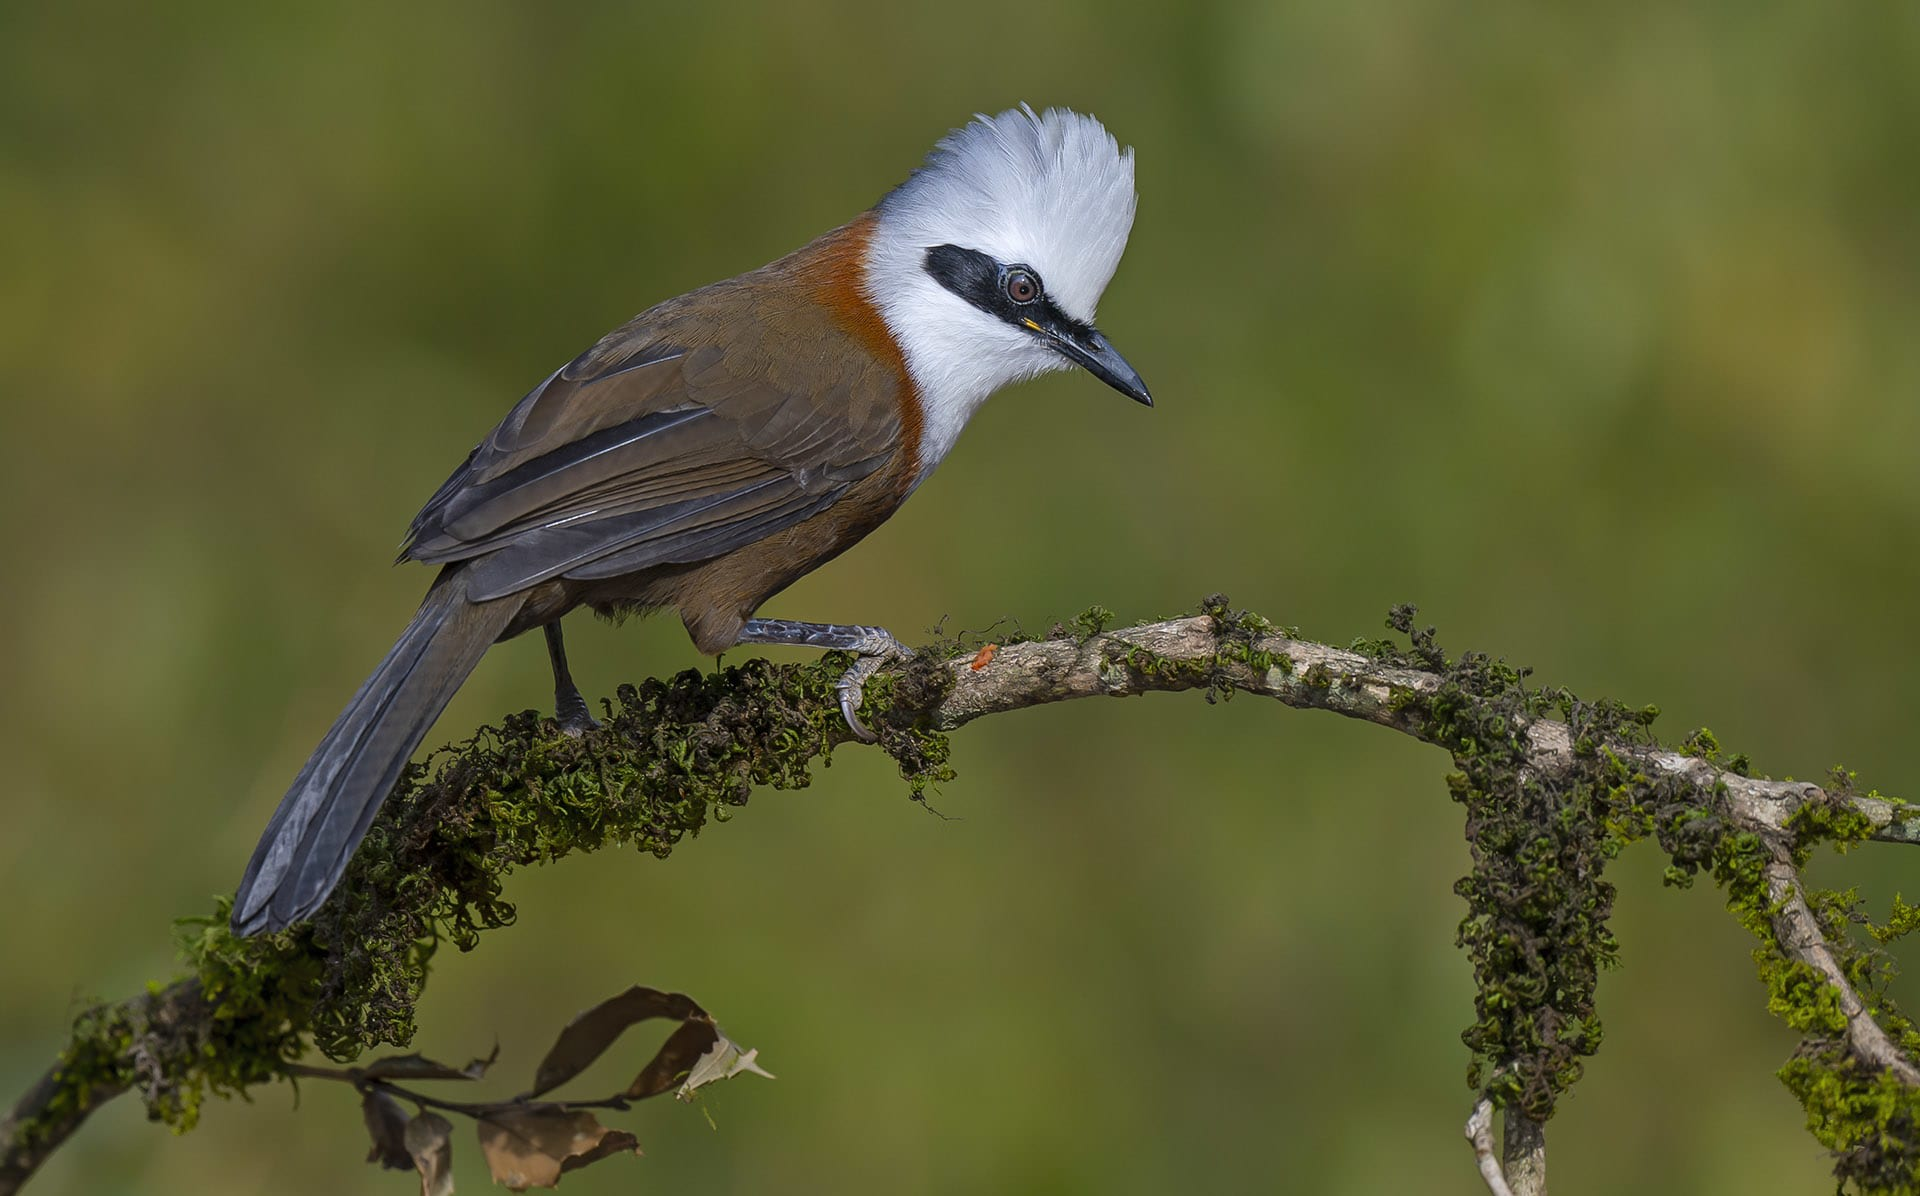 In a study conducted at the popular tourist hotspot of Nainital, experts found that insectivores like the rufous-bellied niltava (Niltava sundara) (top left), rusty-cheeked babbler (Pomothorhinus erythorgenys) (top right) and white-crested laughing thrush (Garrulax leucolophus) (above) are dominant in mixed pine forests. The mid-elevational zone (1,350m-1,800m) provides abundant food resources, roosting sites, and shelter to such bird communities. These mixed pine forests mainly consist of cheer pine and oak.